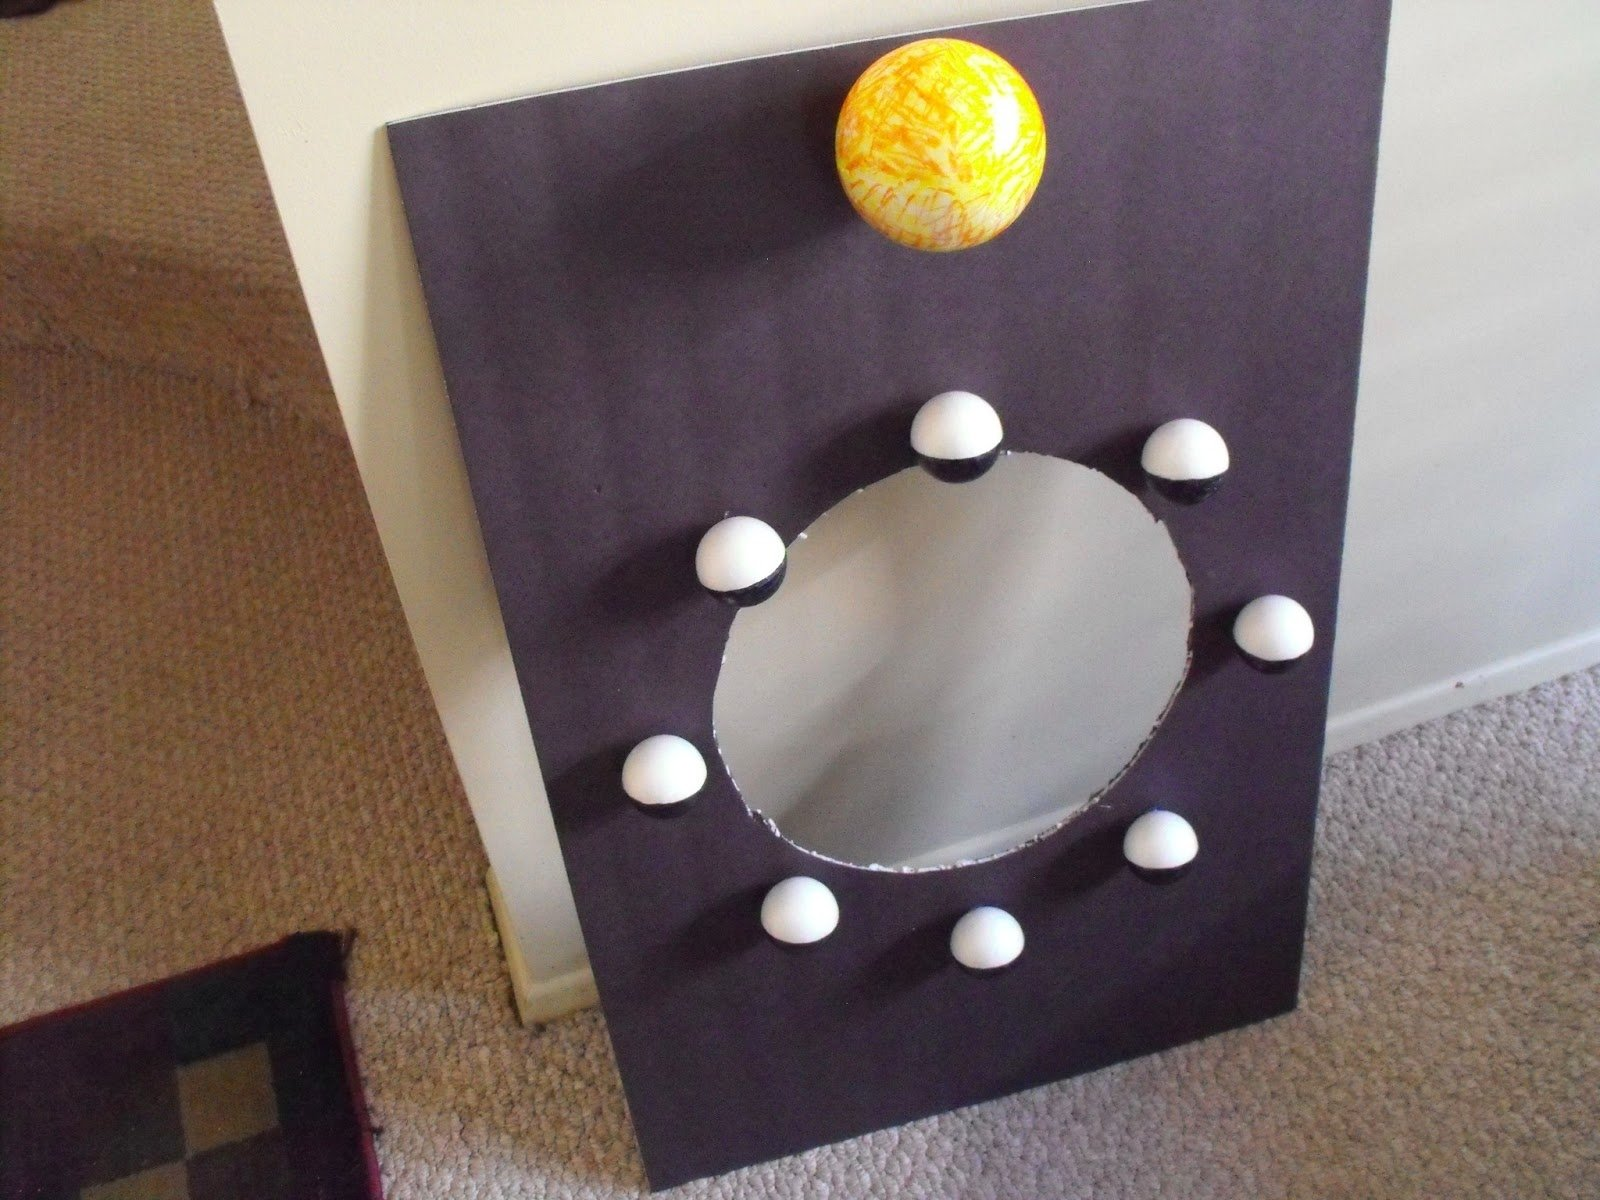 10 Attractive Phases Of The Moon Project Ideas teachingisagift saw it on pinterestbought it at dollar tree 2020